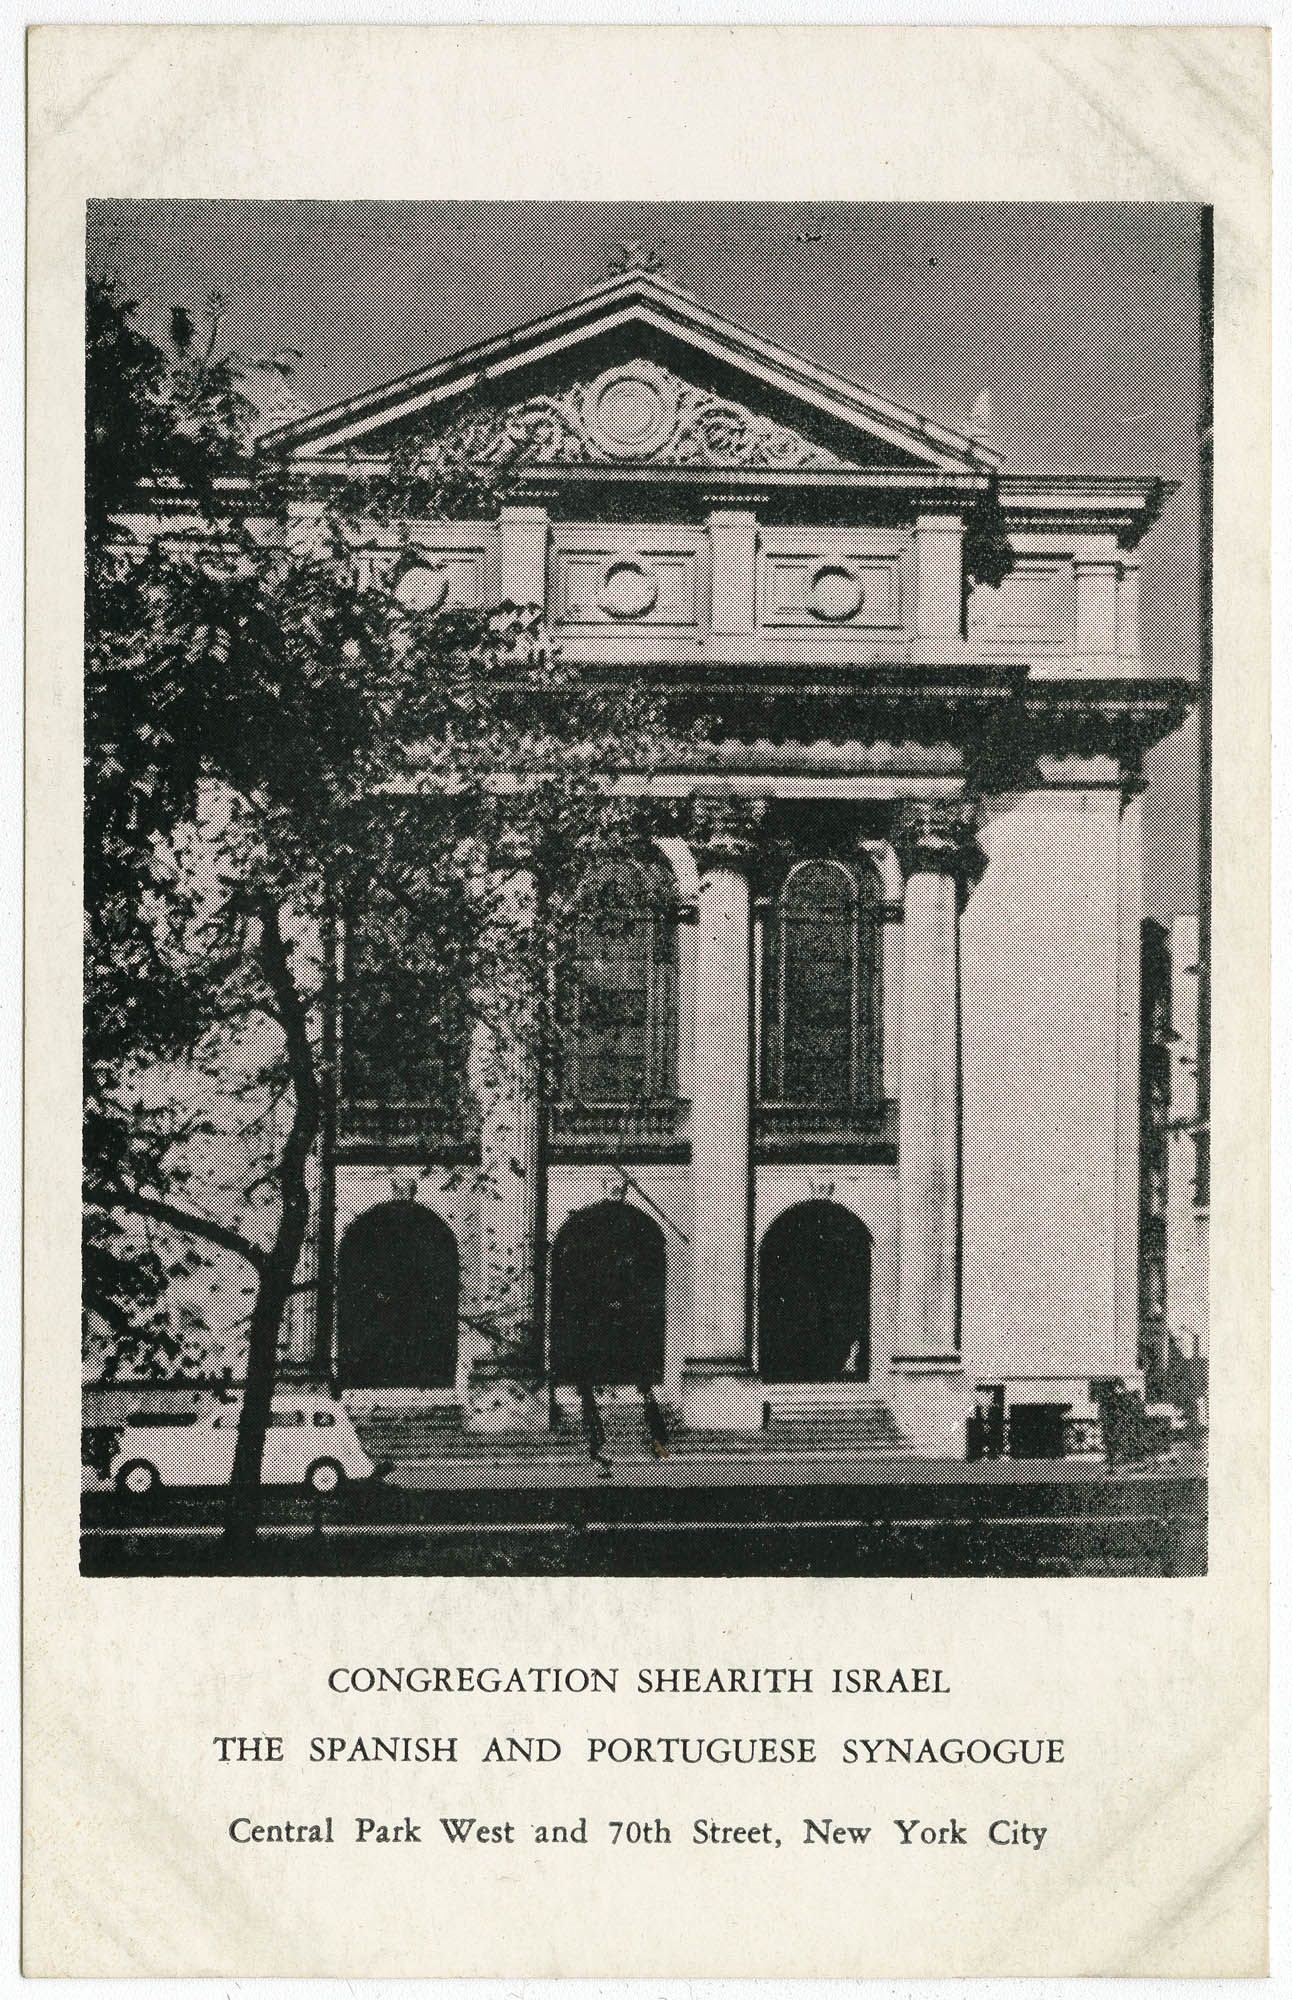 Congregation Shearith Israel, The Spanish and Portuguese Synagogue, Central Park West and 70th Street, New York City